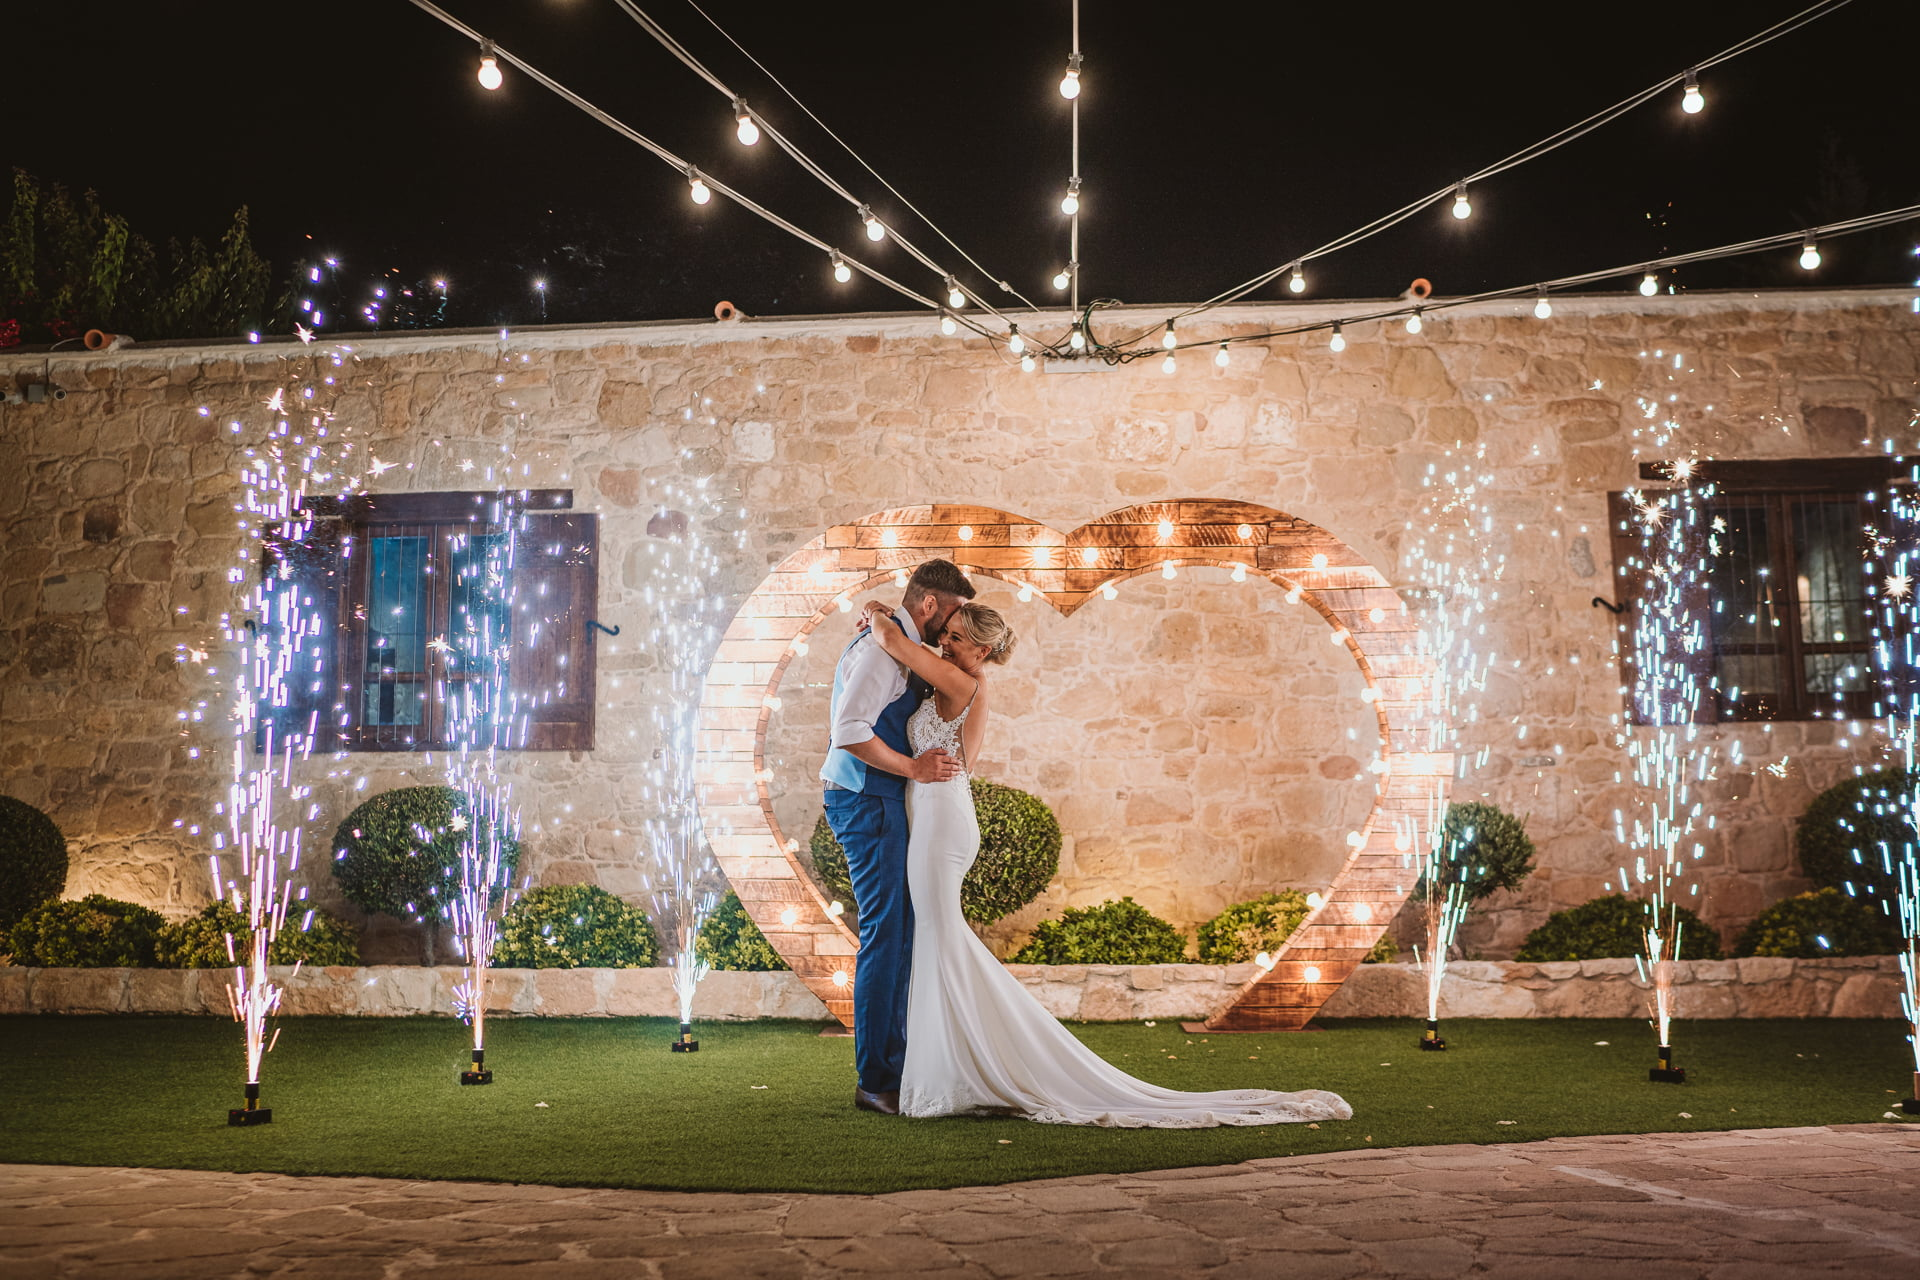 Natalie and Jack's Firework-Filled Liopetro Wedding 6